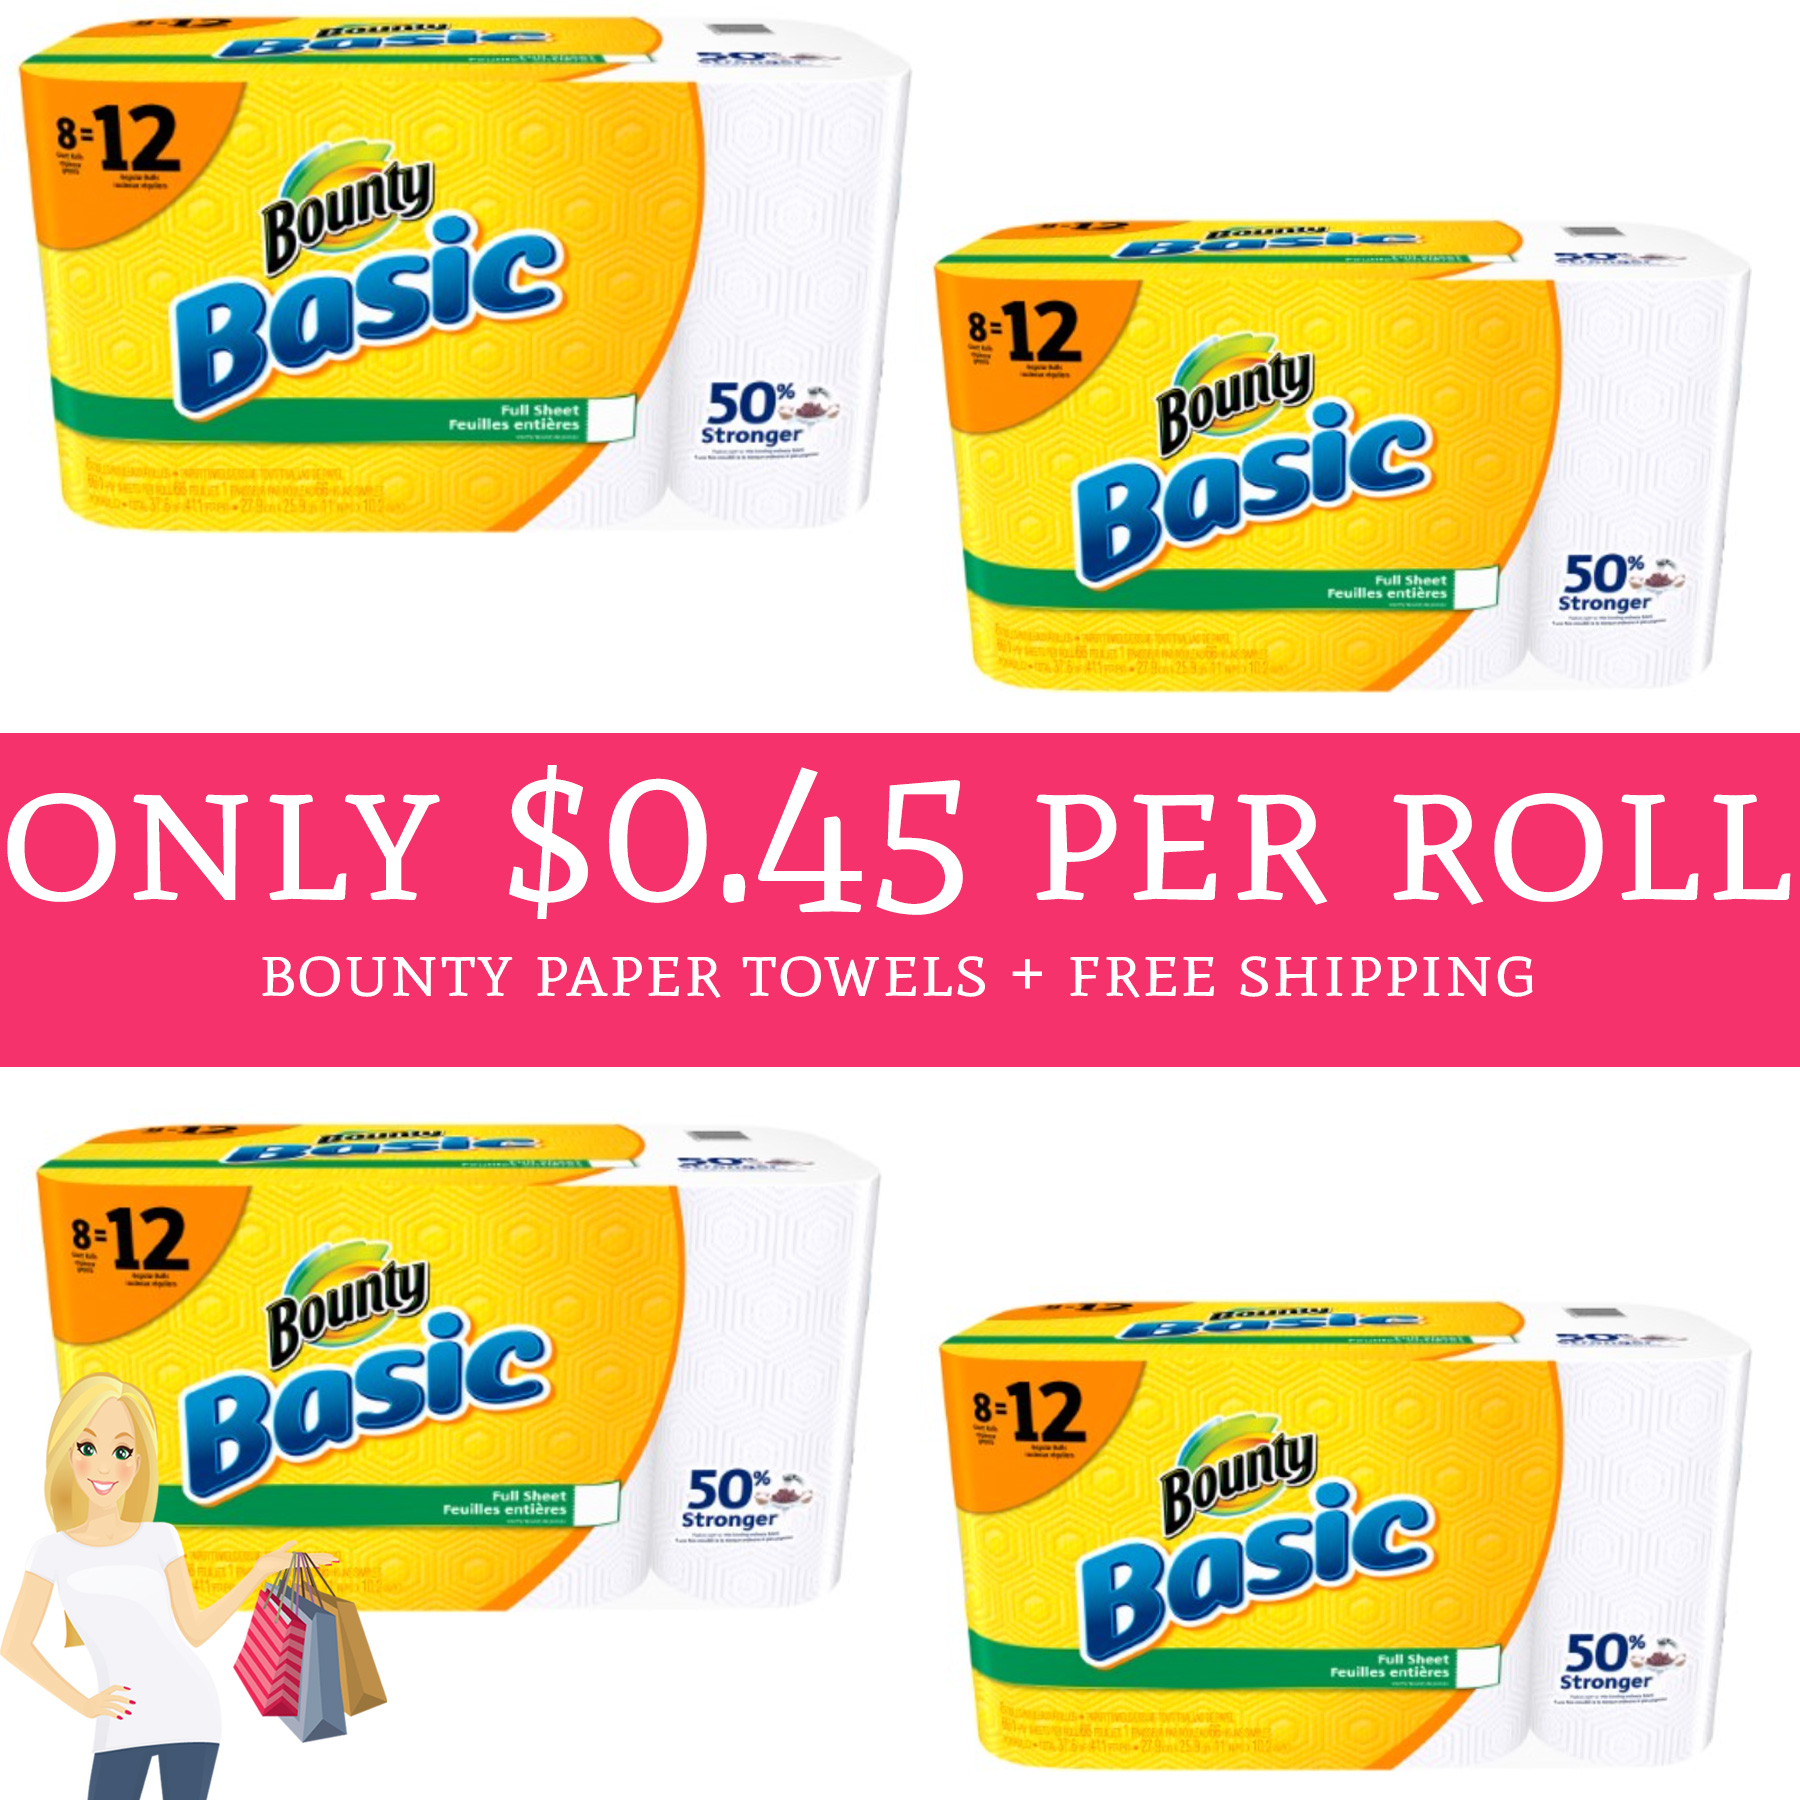 Bounty Paper Towels Cvs: HURRY! Only $0.45 Per Bounty Paper Towels Roll + Free